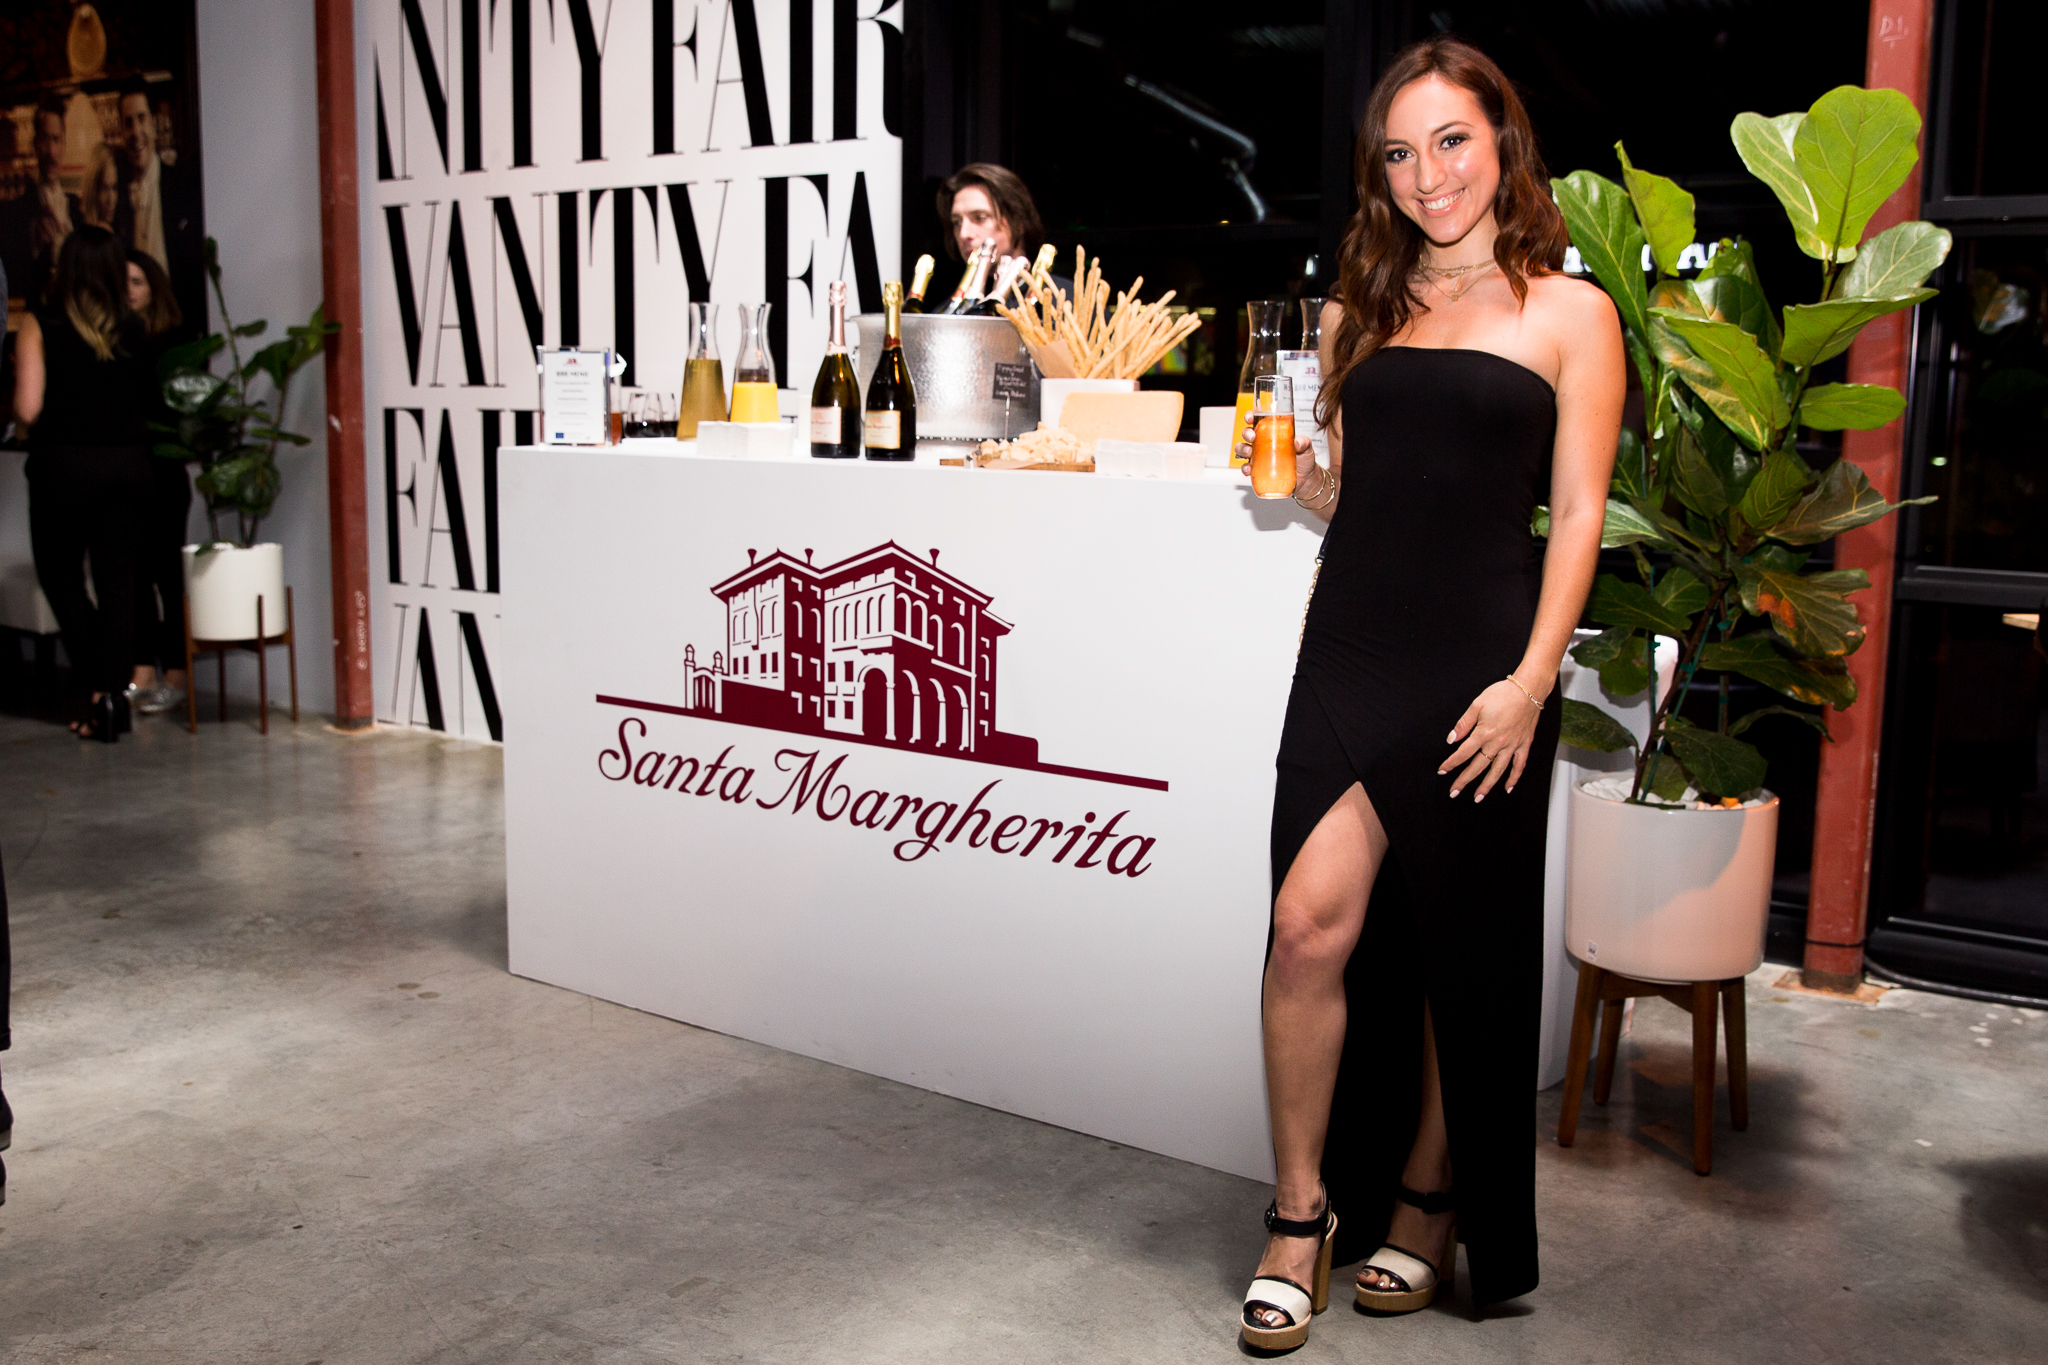 Brielle Galekovic of The Gilded Bellini with Santa Margherita Wines at Vanity Fair Social Club Emmy's Edition 2016